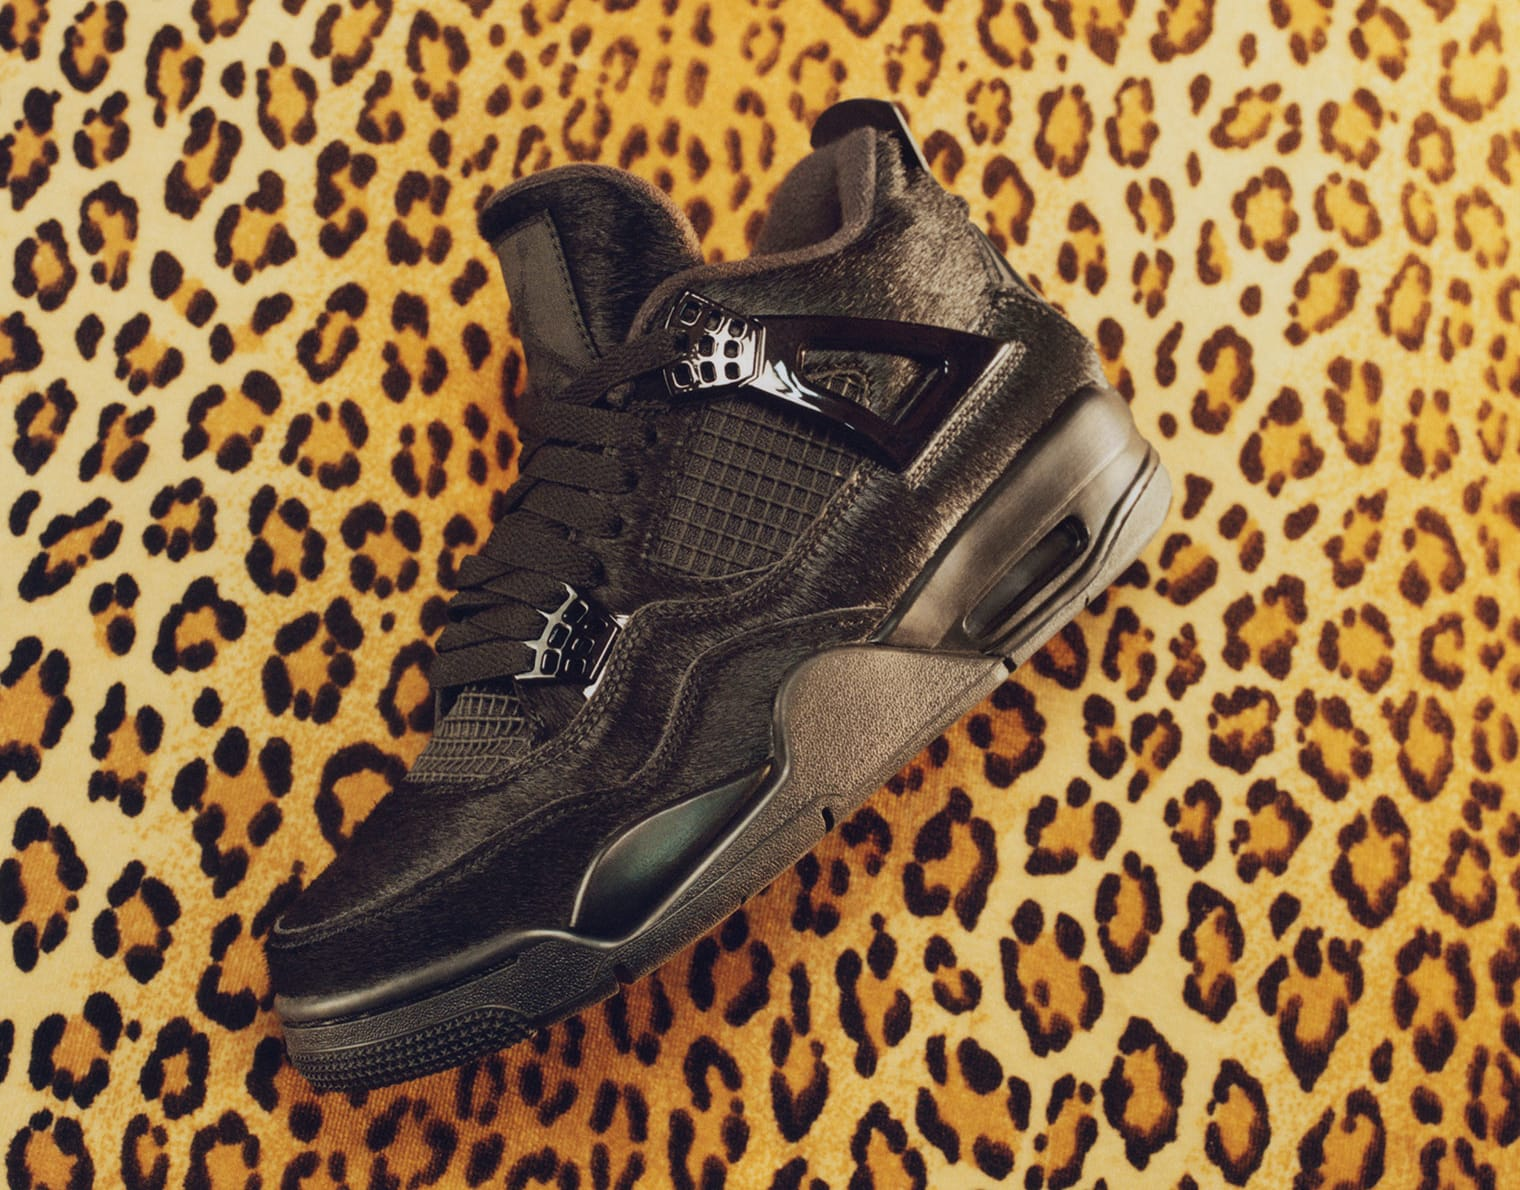 olivia-kim-nordstrom-no-cover-air-jordan-4-iv